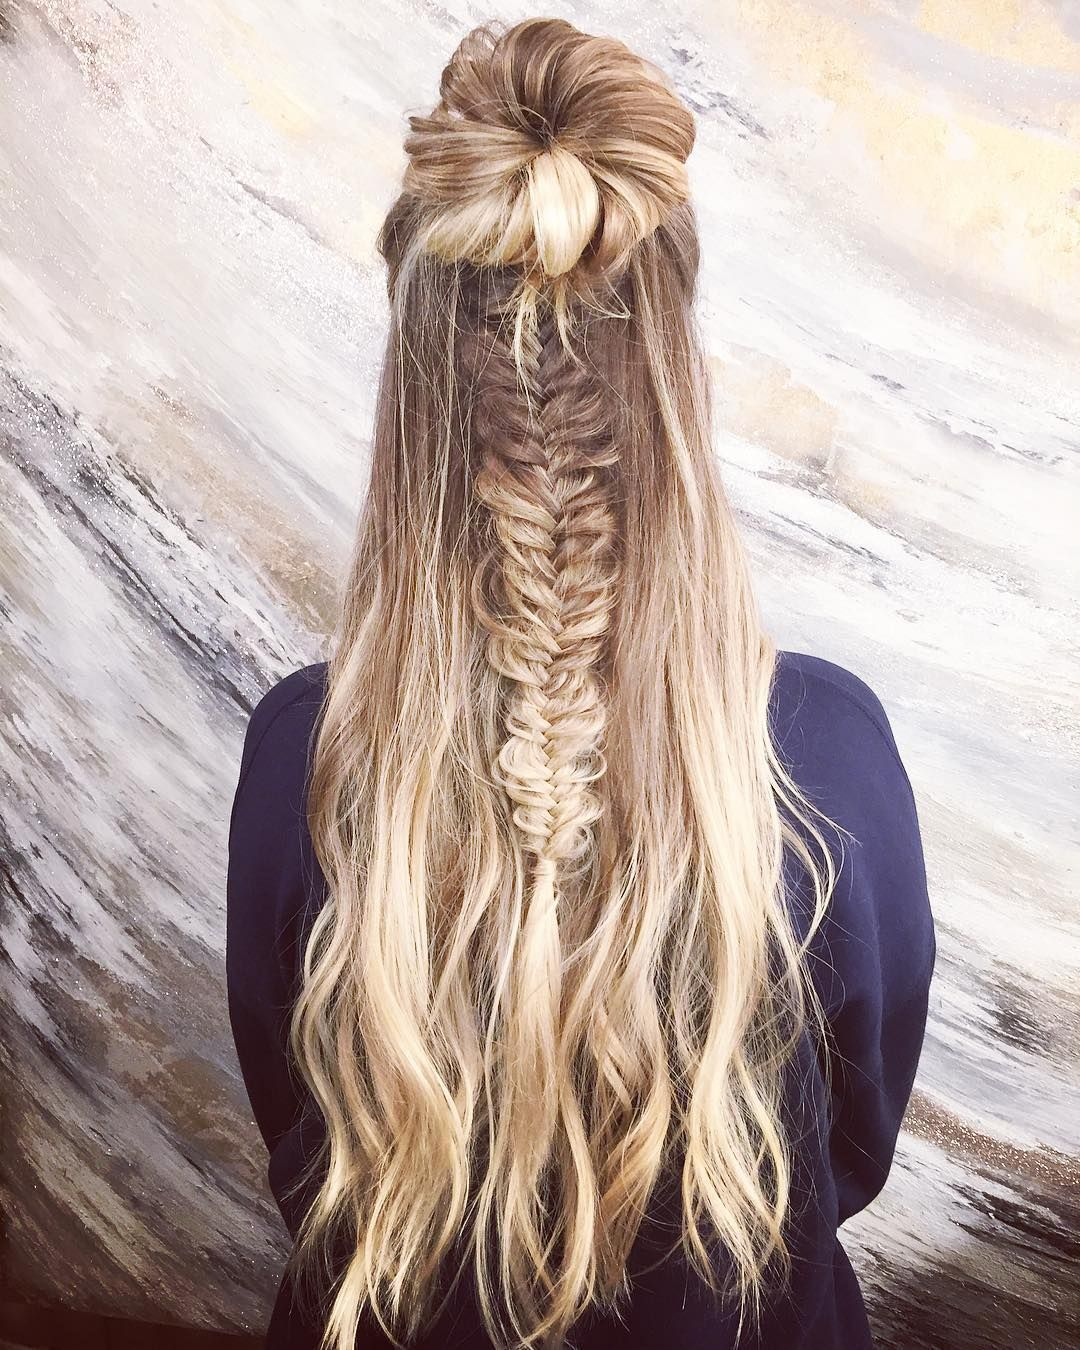 Half up half down fishtail hairstyle - Hair and Beauty eye ...